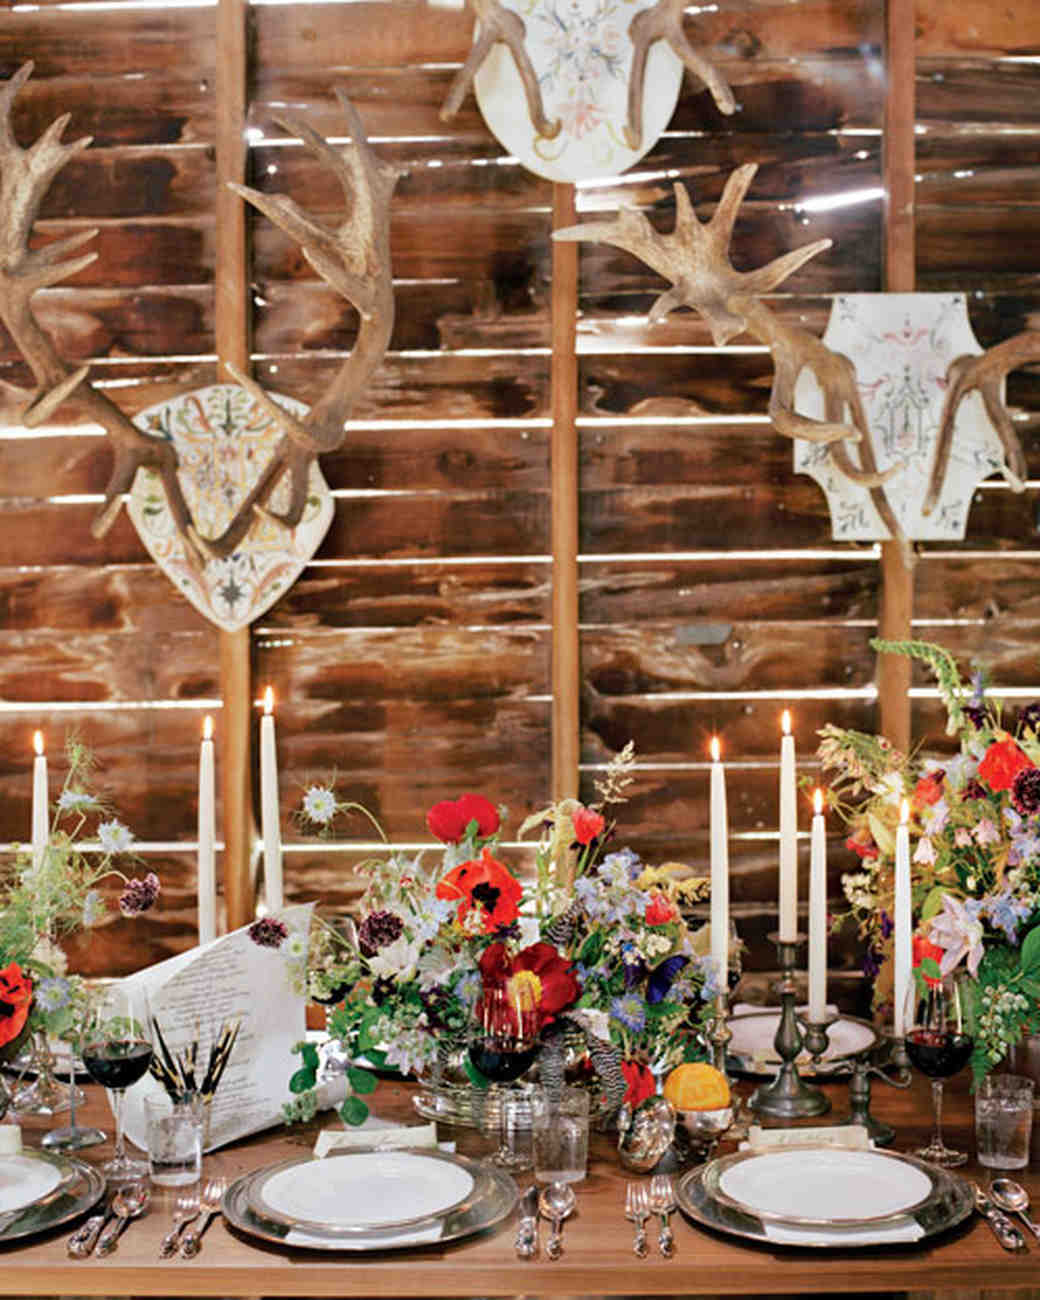 Country Wedding Centerpieces Ideas: 23 Ways To Arrange Red Wedding Centerpieces